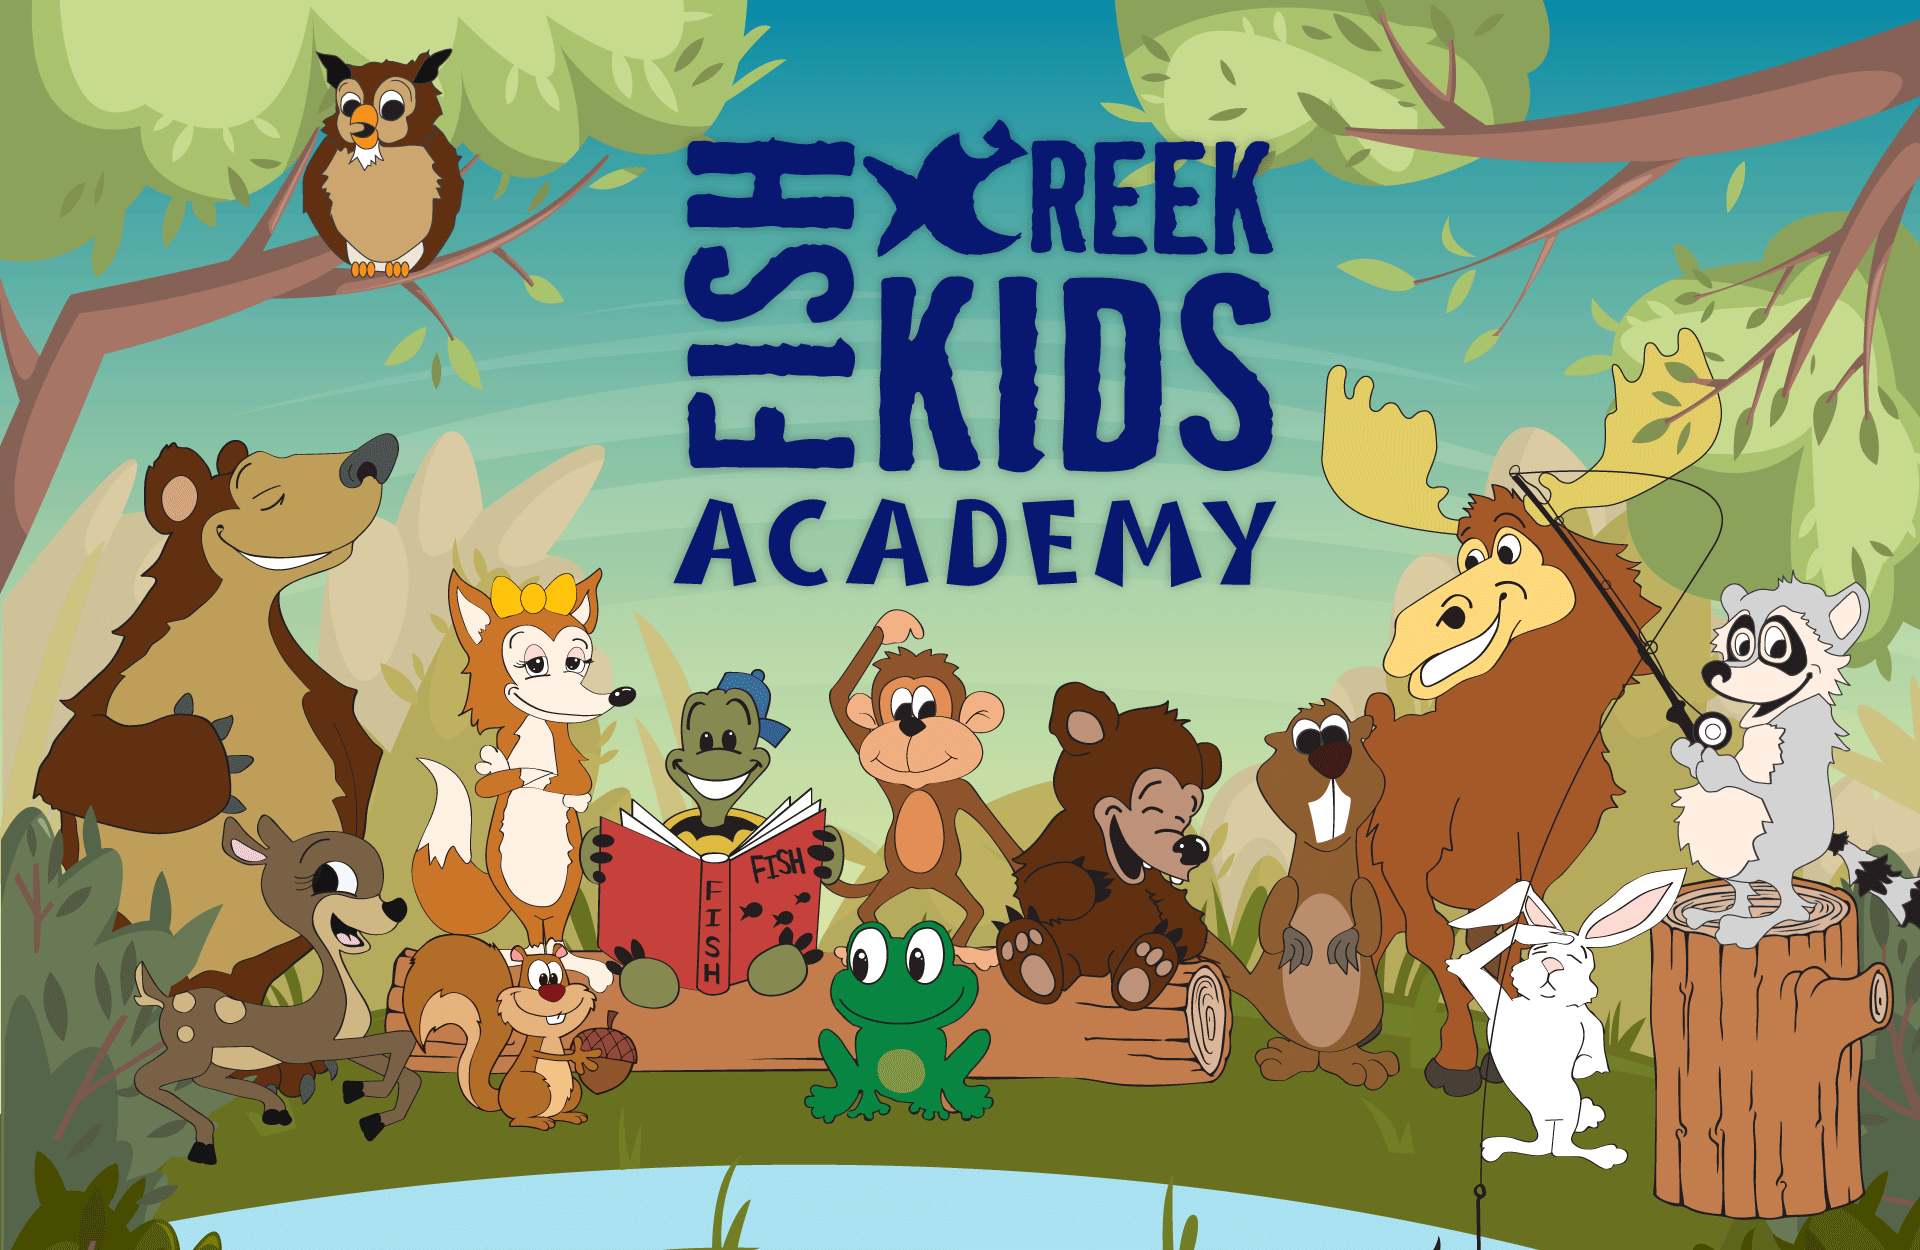 FishCreek Kids Academy logo with animals